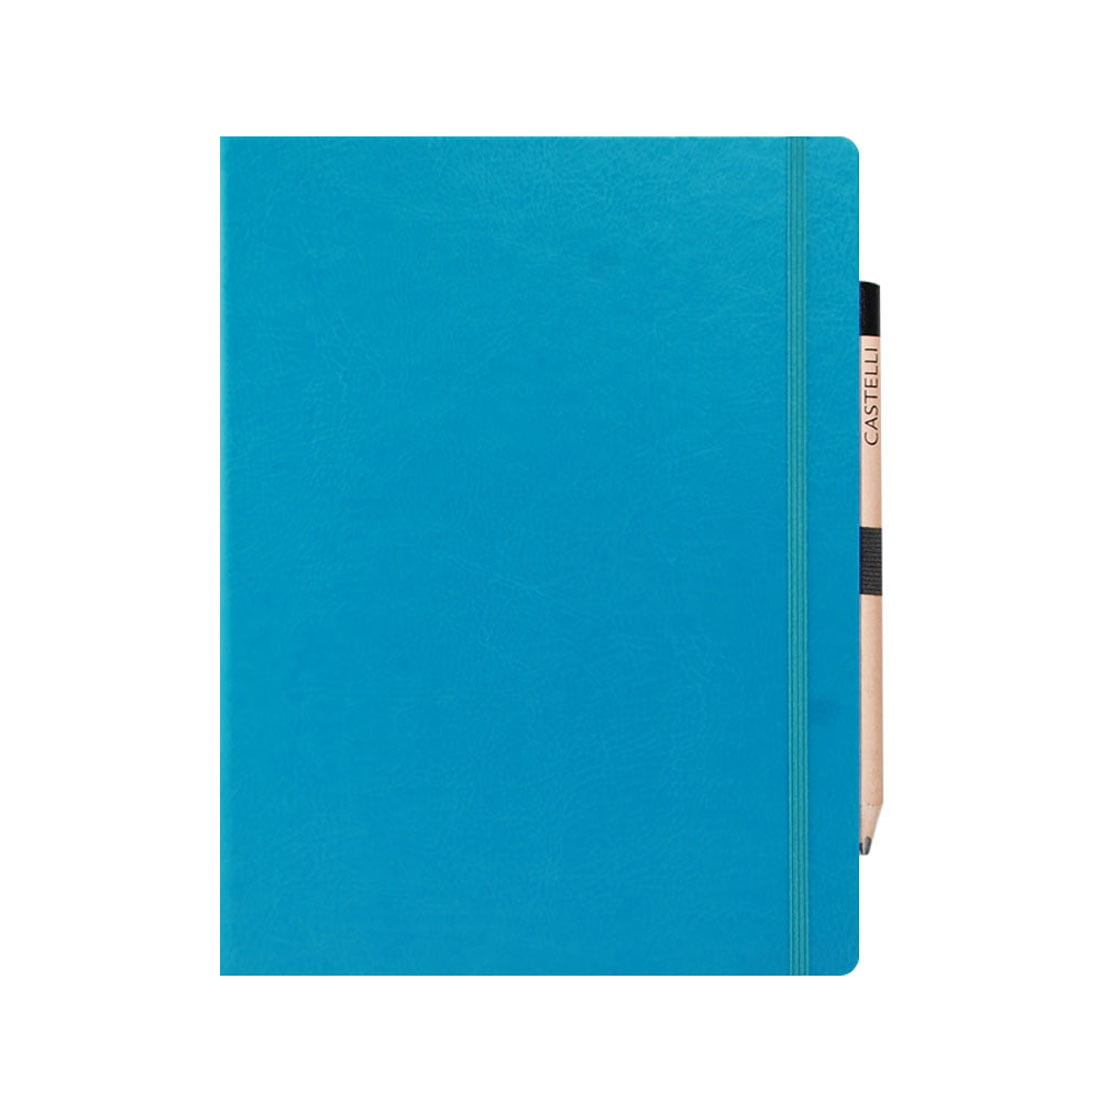 Large ruled notebook with rounded corners, pen loop with pencil included.